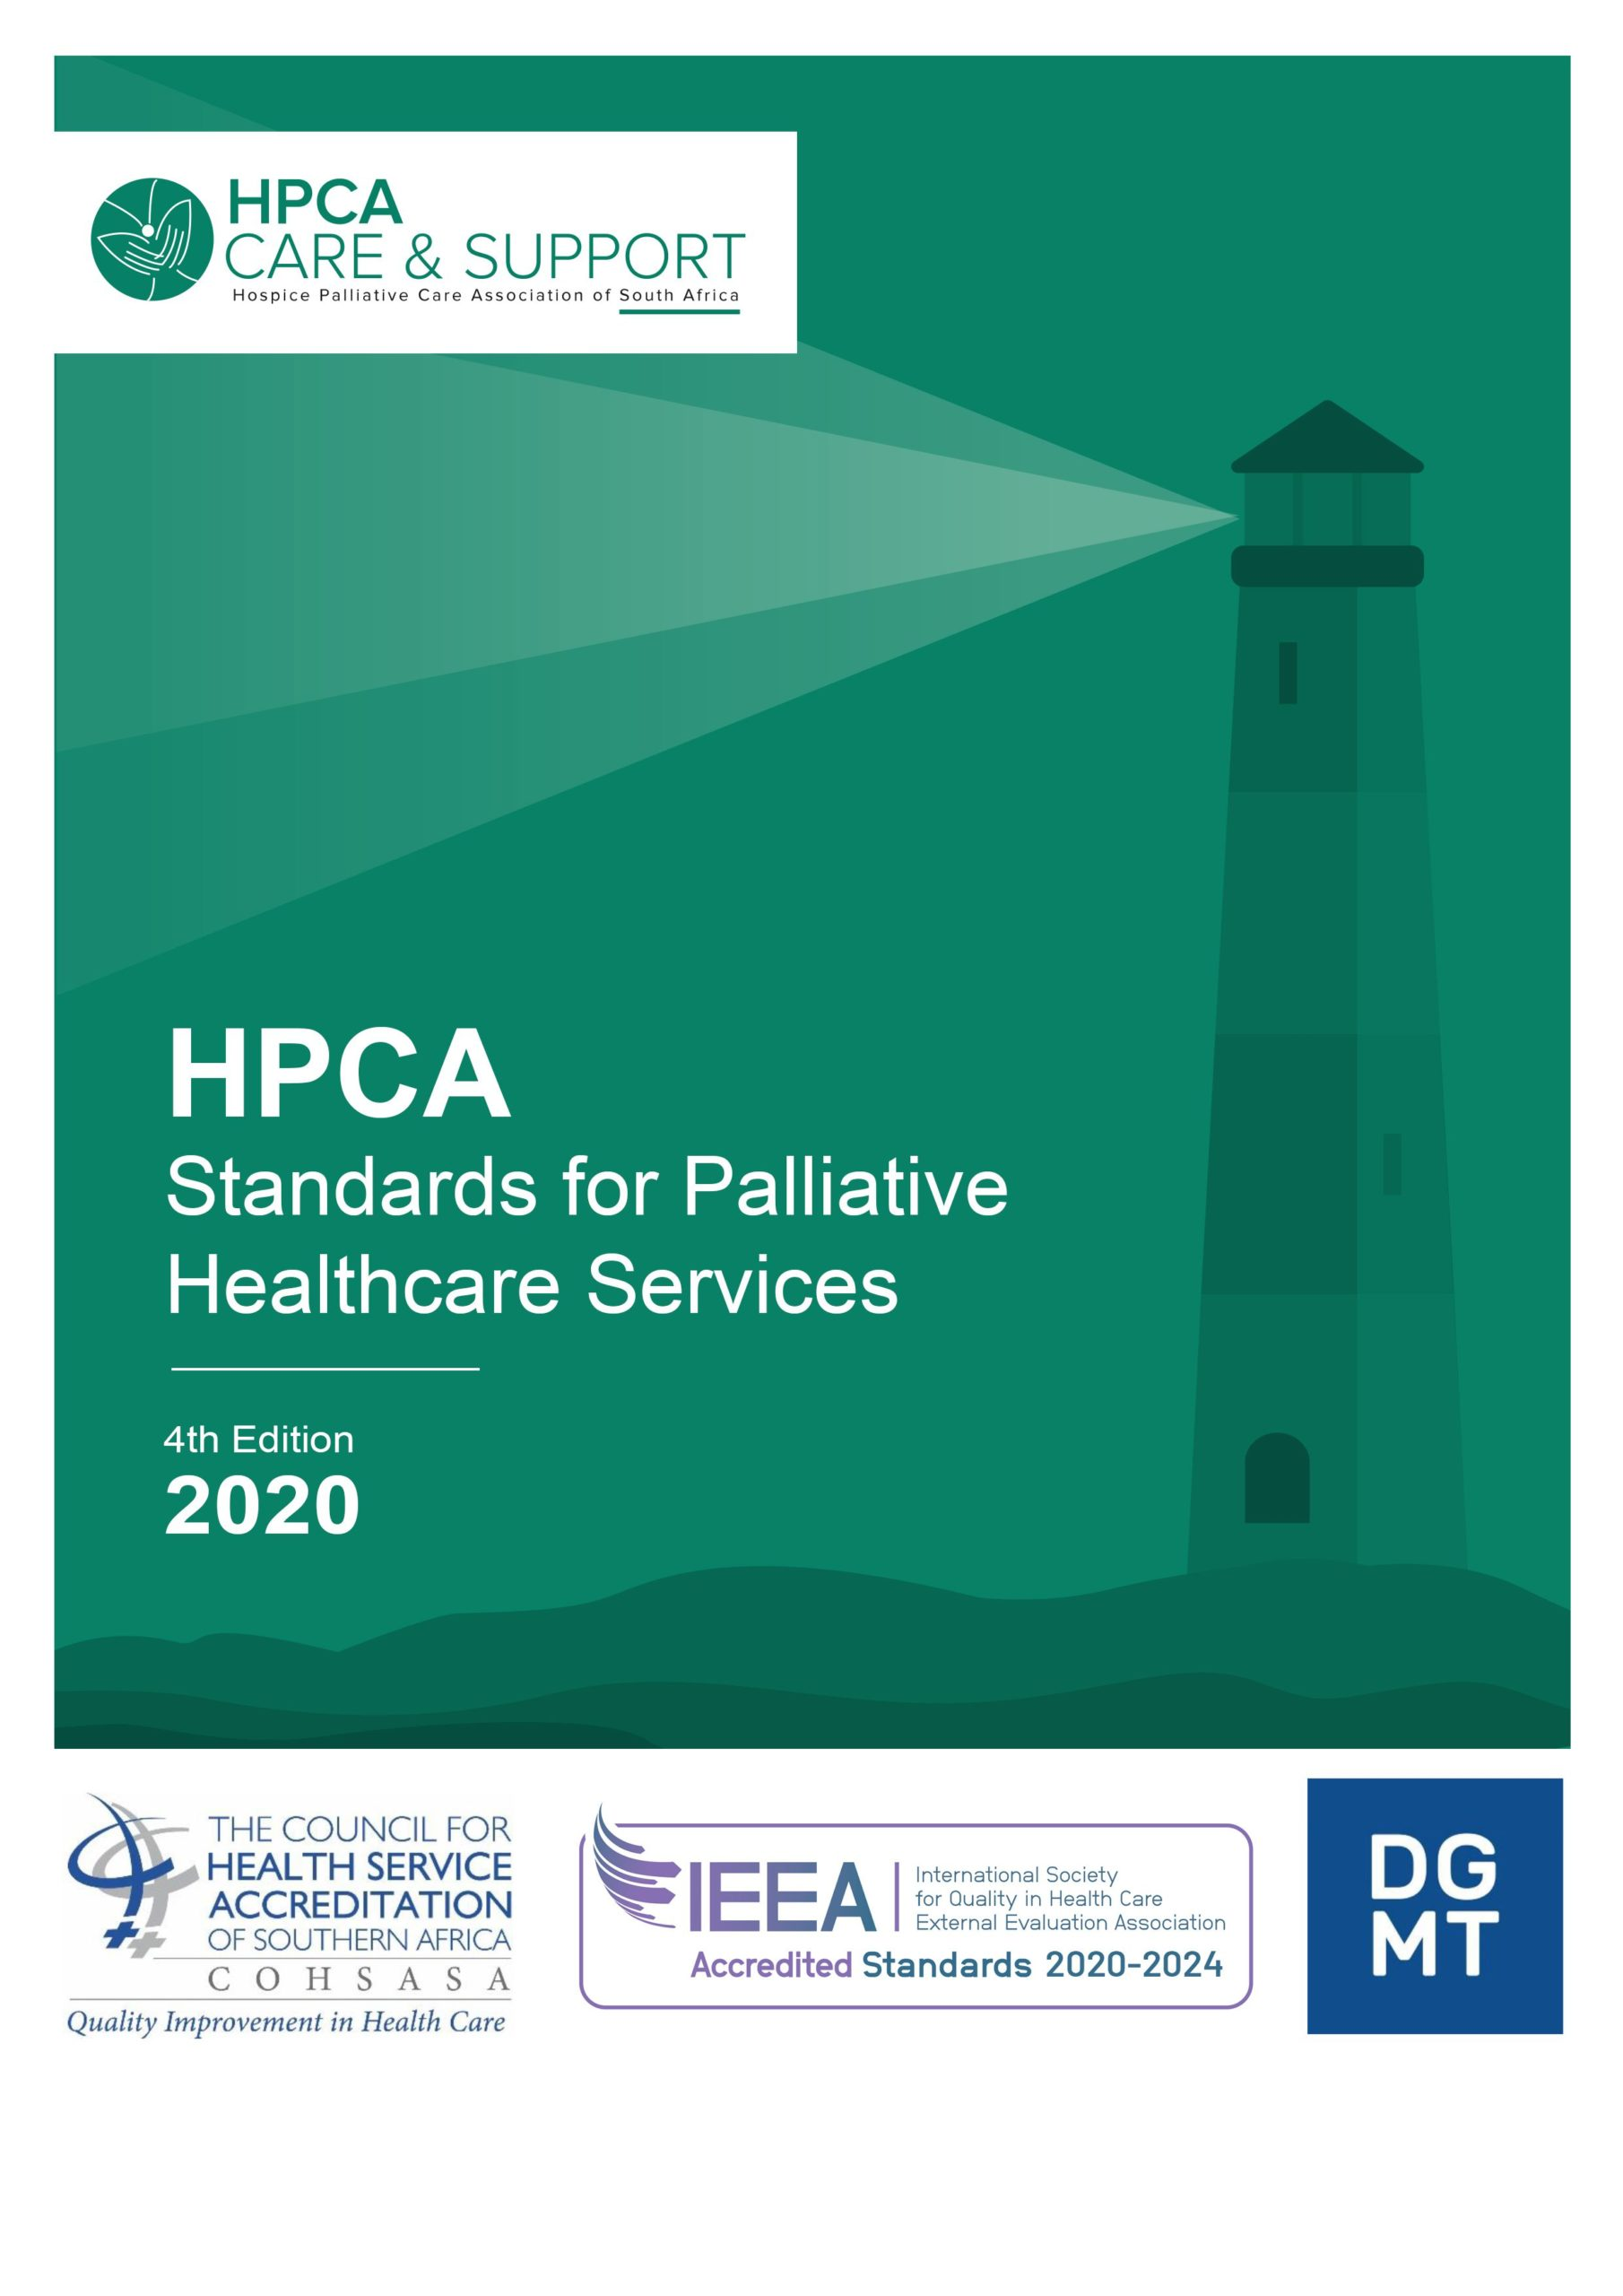 4th edition of SA's Standards for Palliative Healthcare Services ensures continued credibility and quality of local palliative healthcare sector